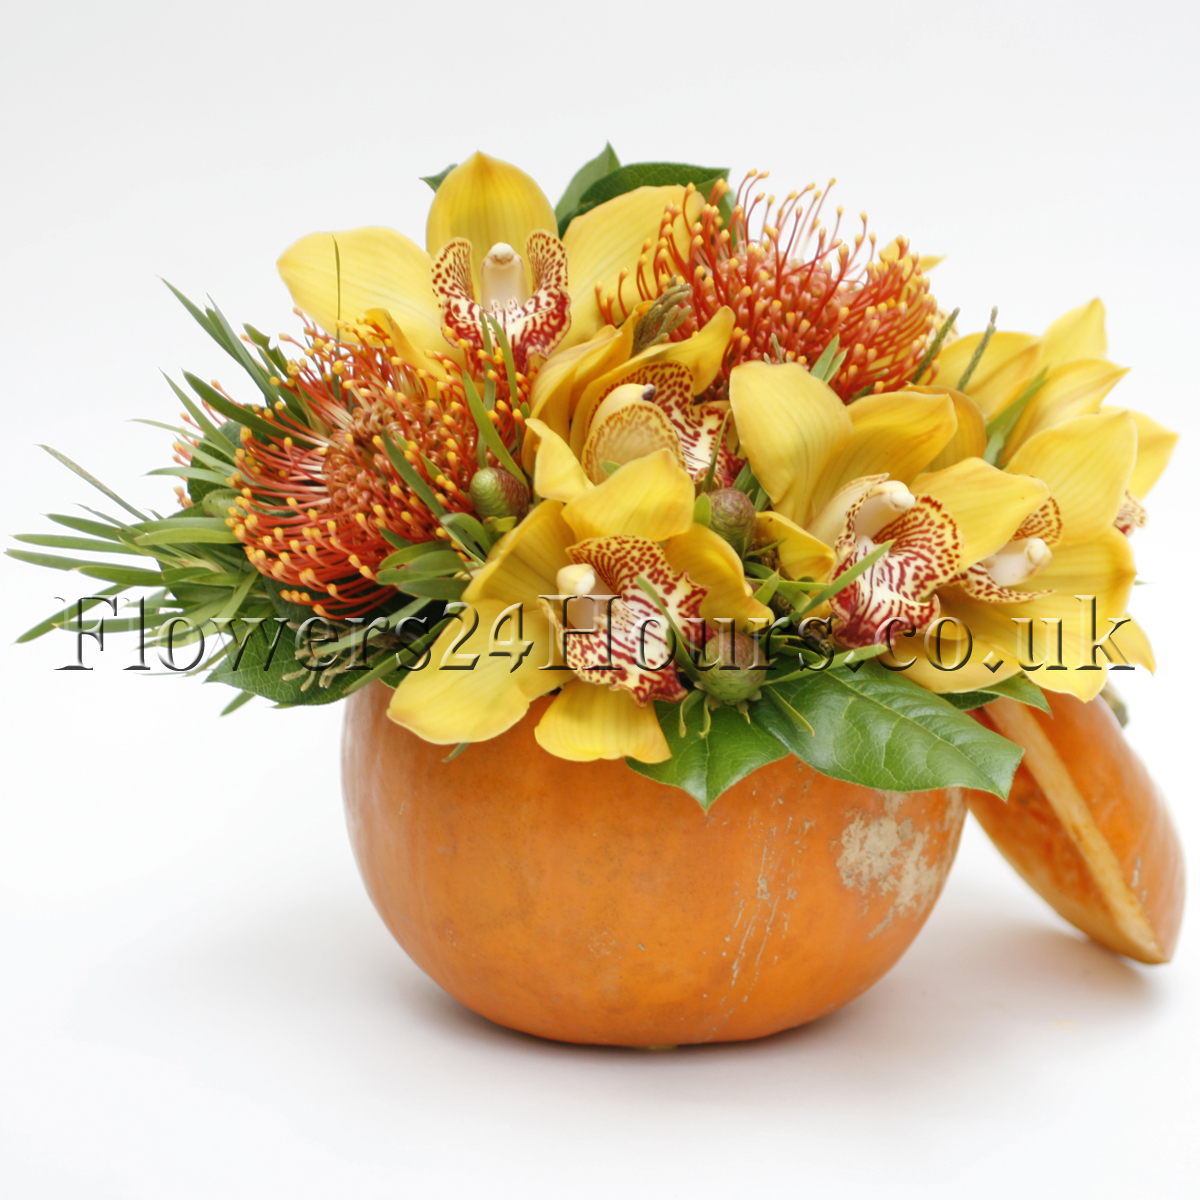 Halloween flowers delivered in london uk flowers blog flowers many customs have developed and spread down through the centuries from serious religious observation to childish games there is quite a spread of izmirmasajfo Images